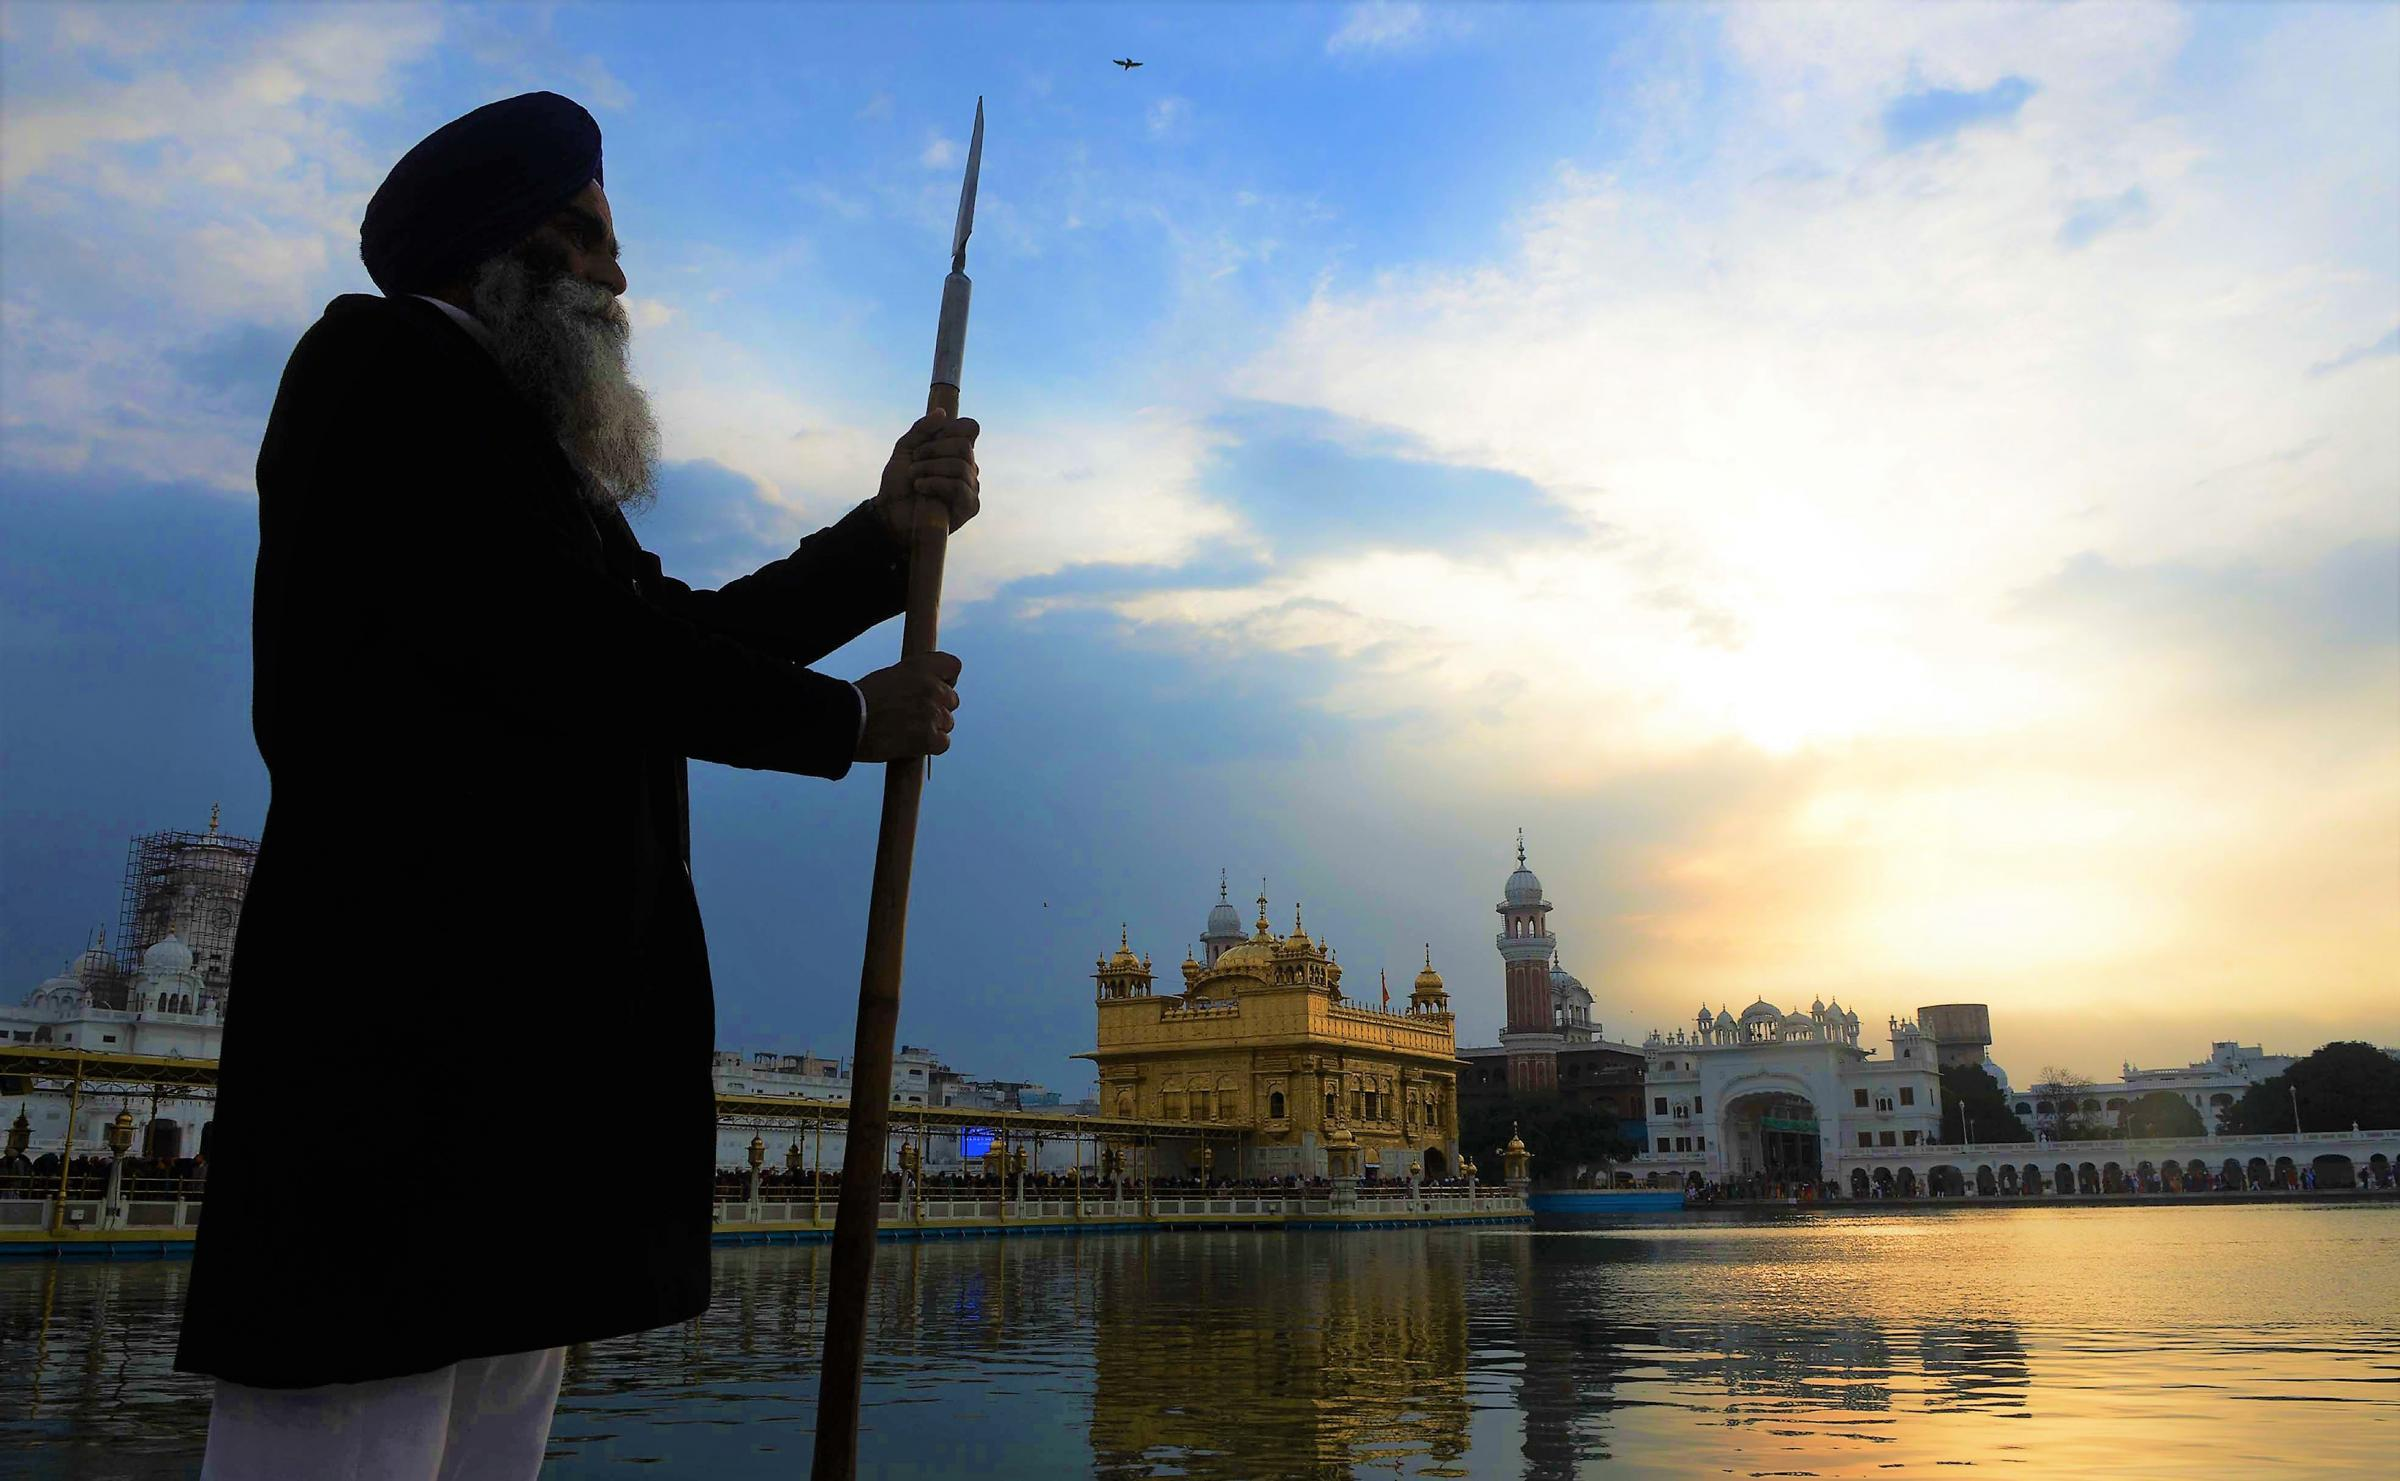 Campaigners claim Sikhs have been the victims of economic exploitation in India